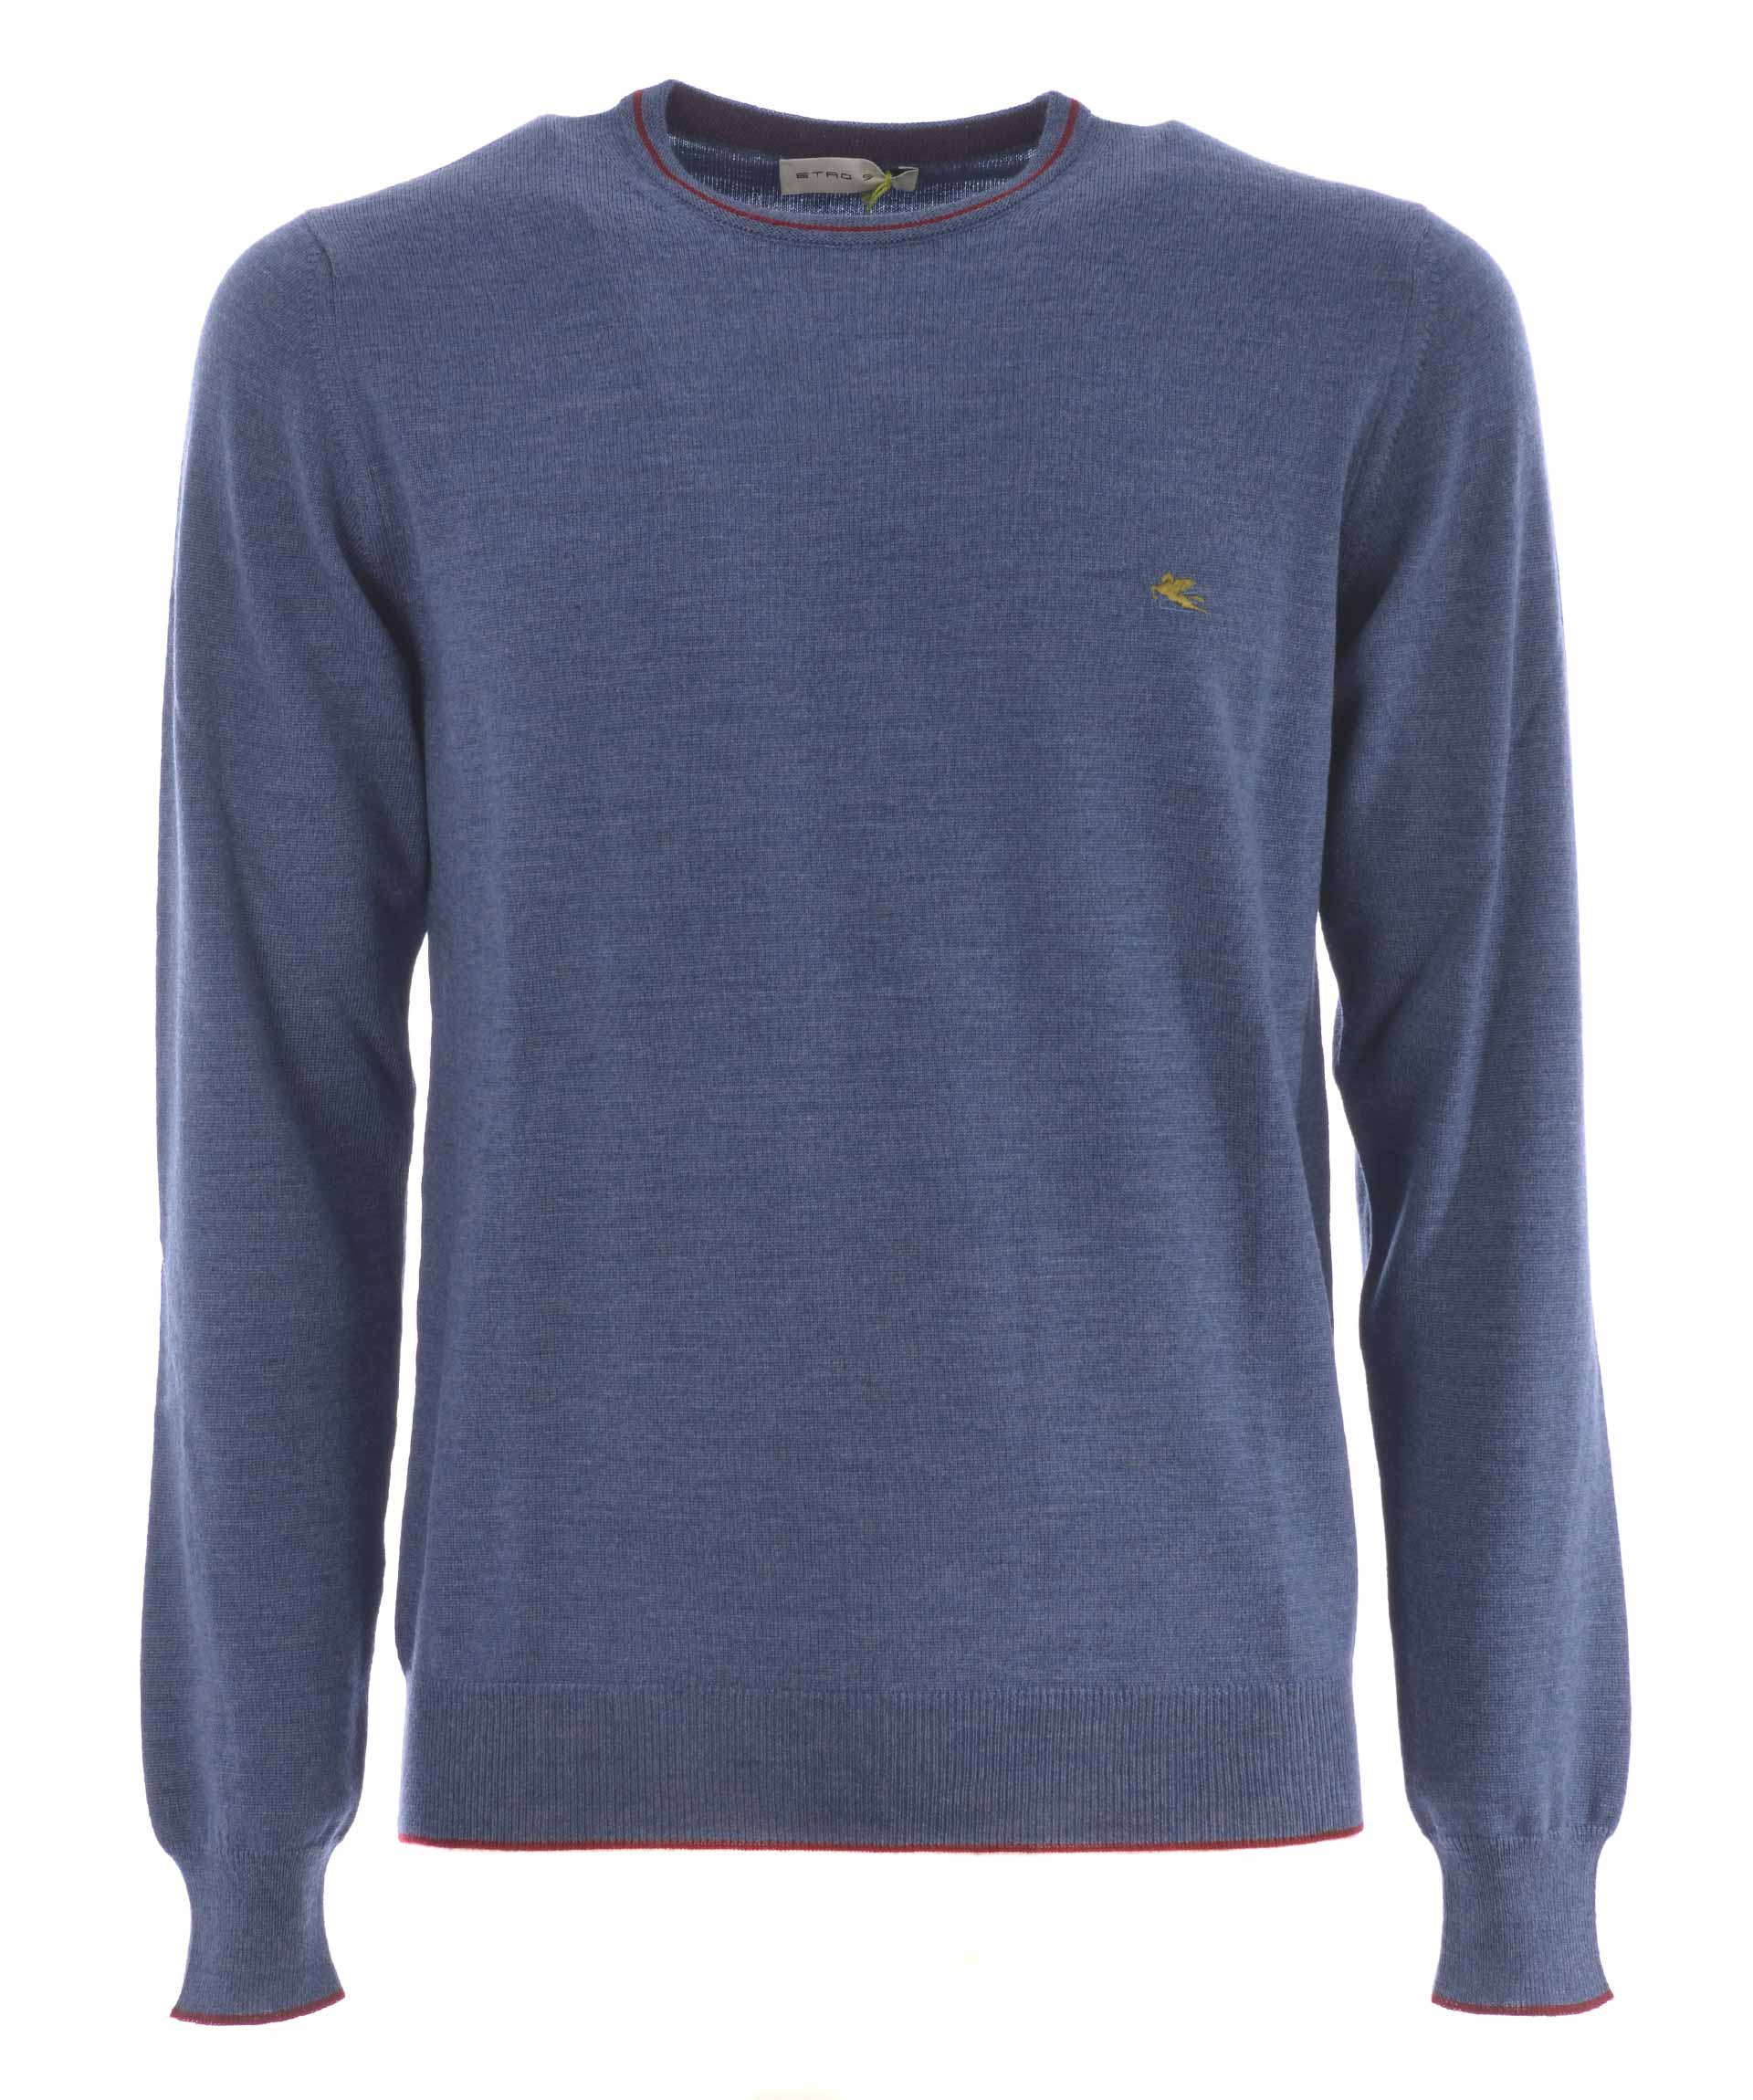 Etro Knitted Sweater